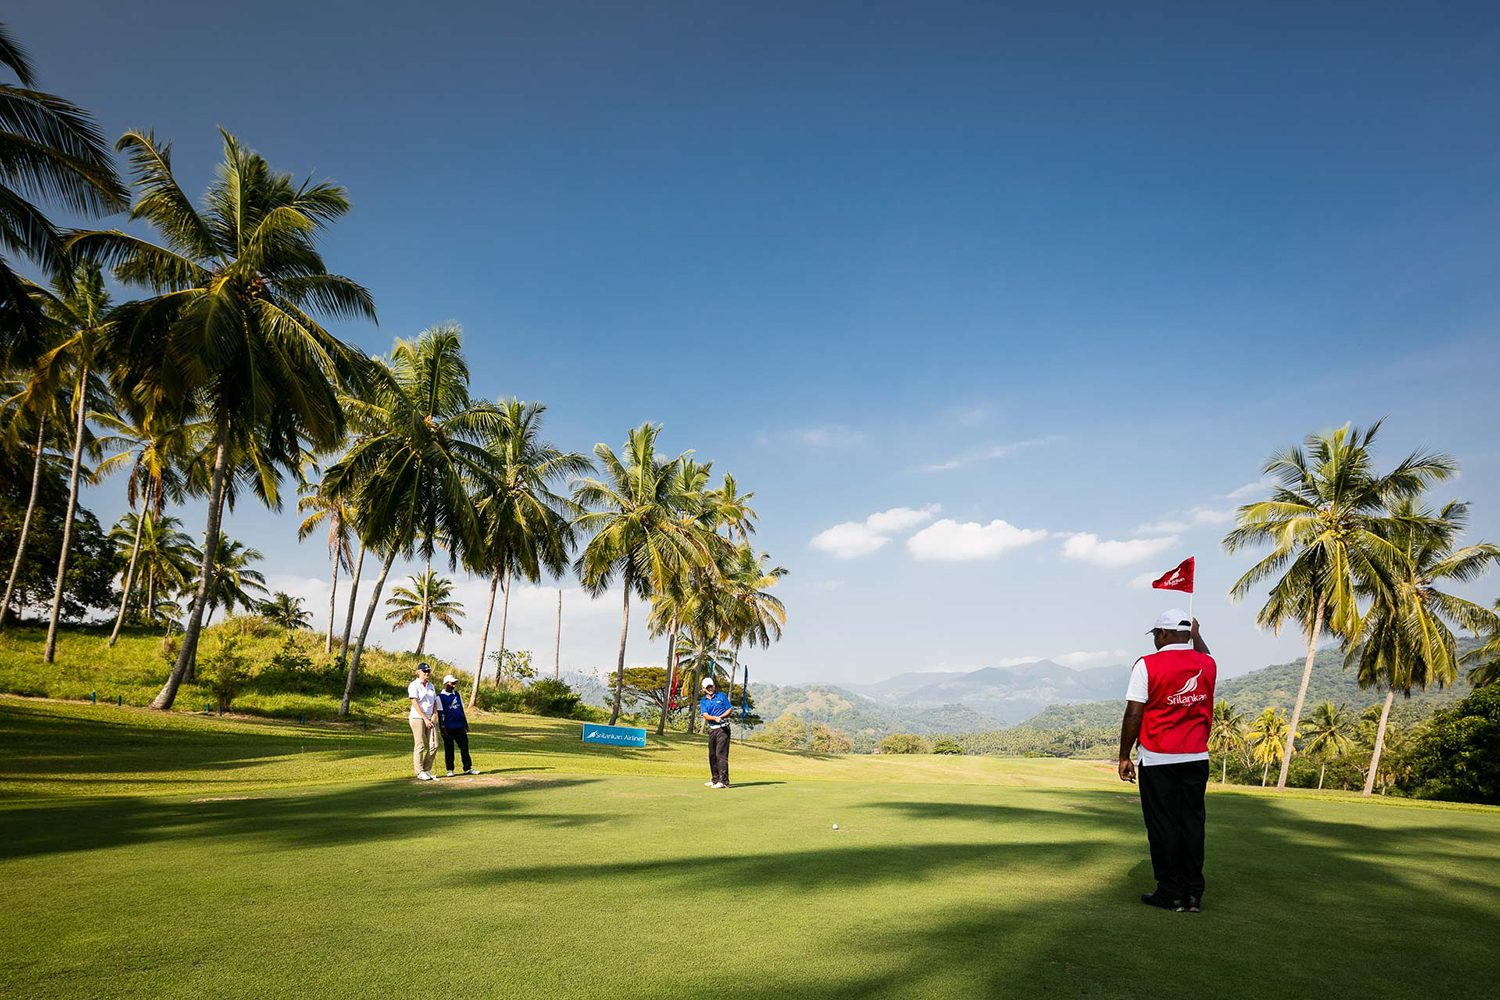 Golf in Sri Lanka